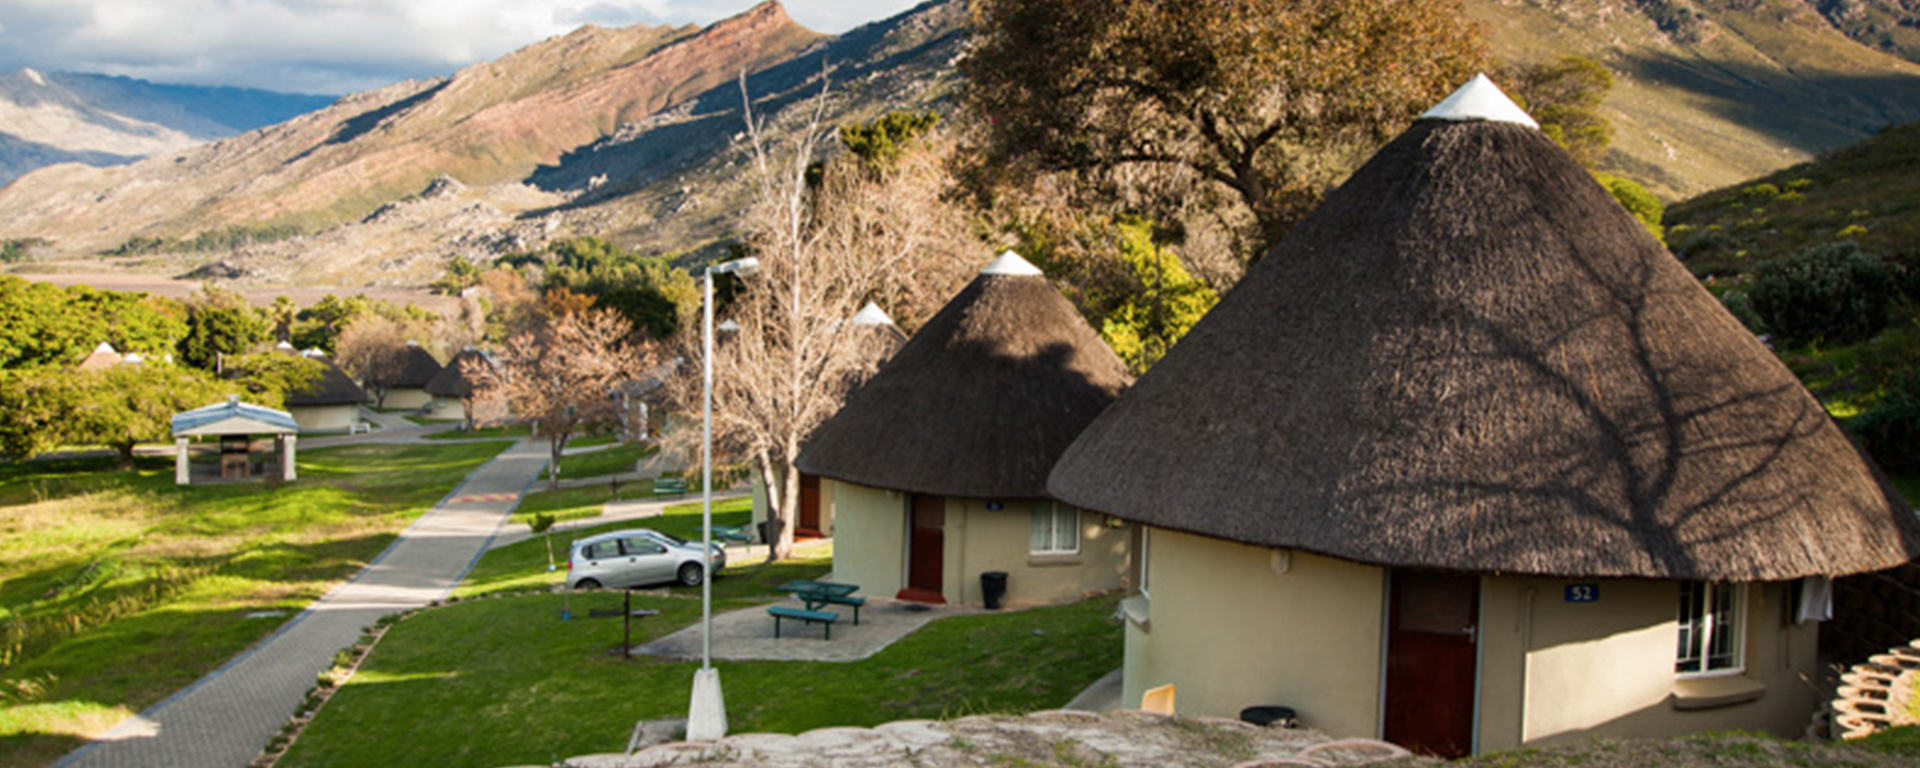 Goudini Spa Rawsonville Worcester South Africa Sun